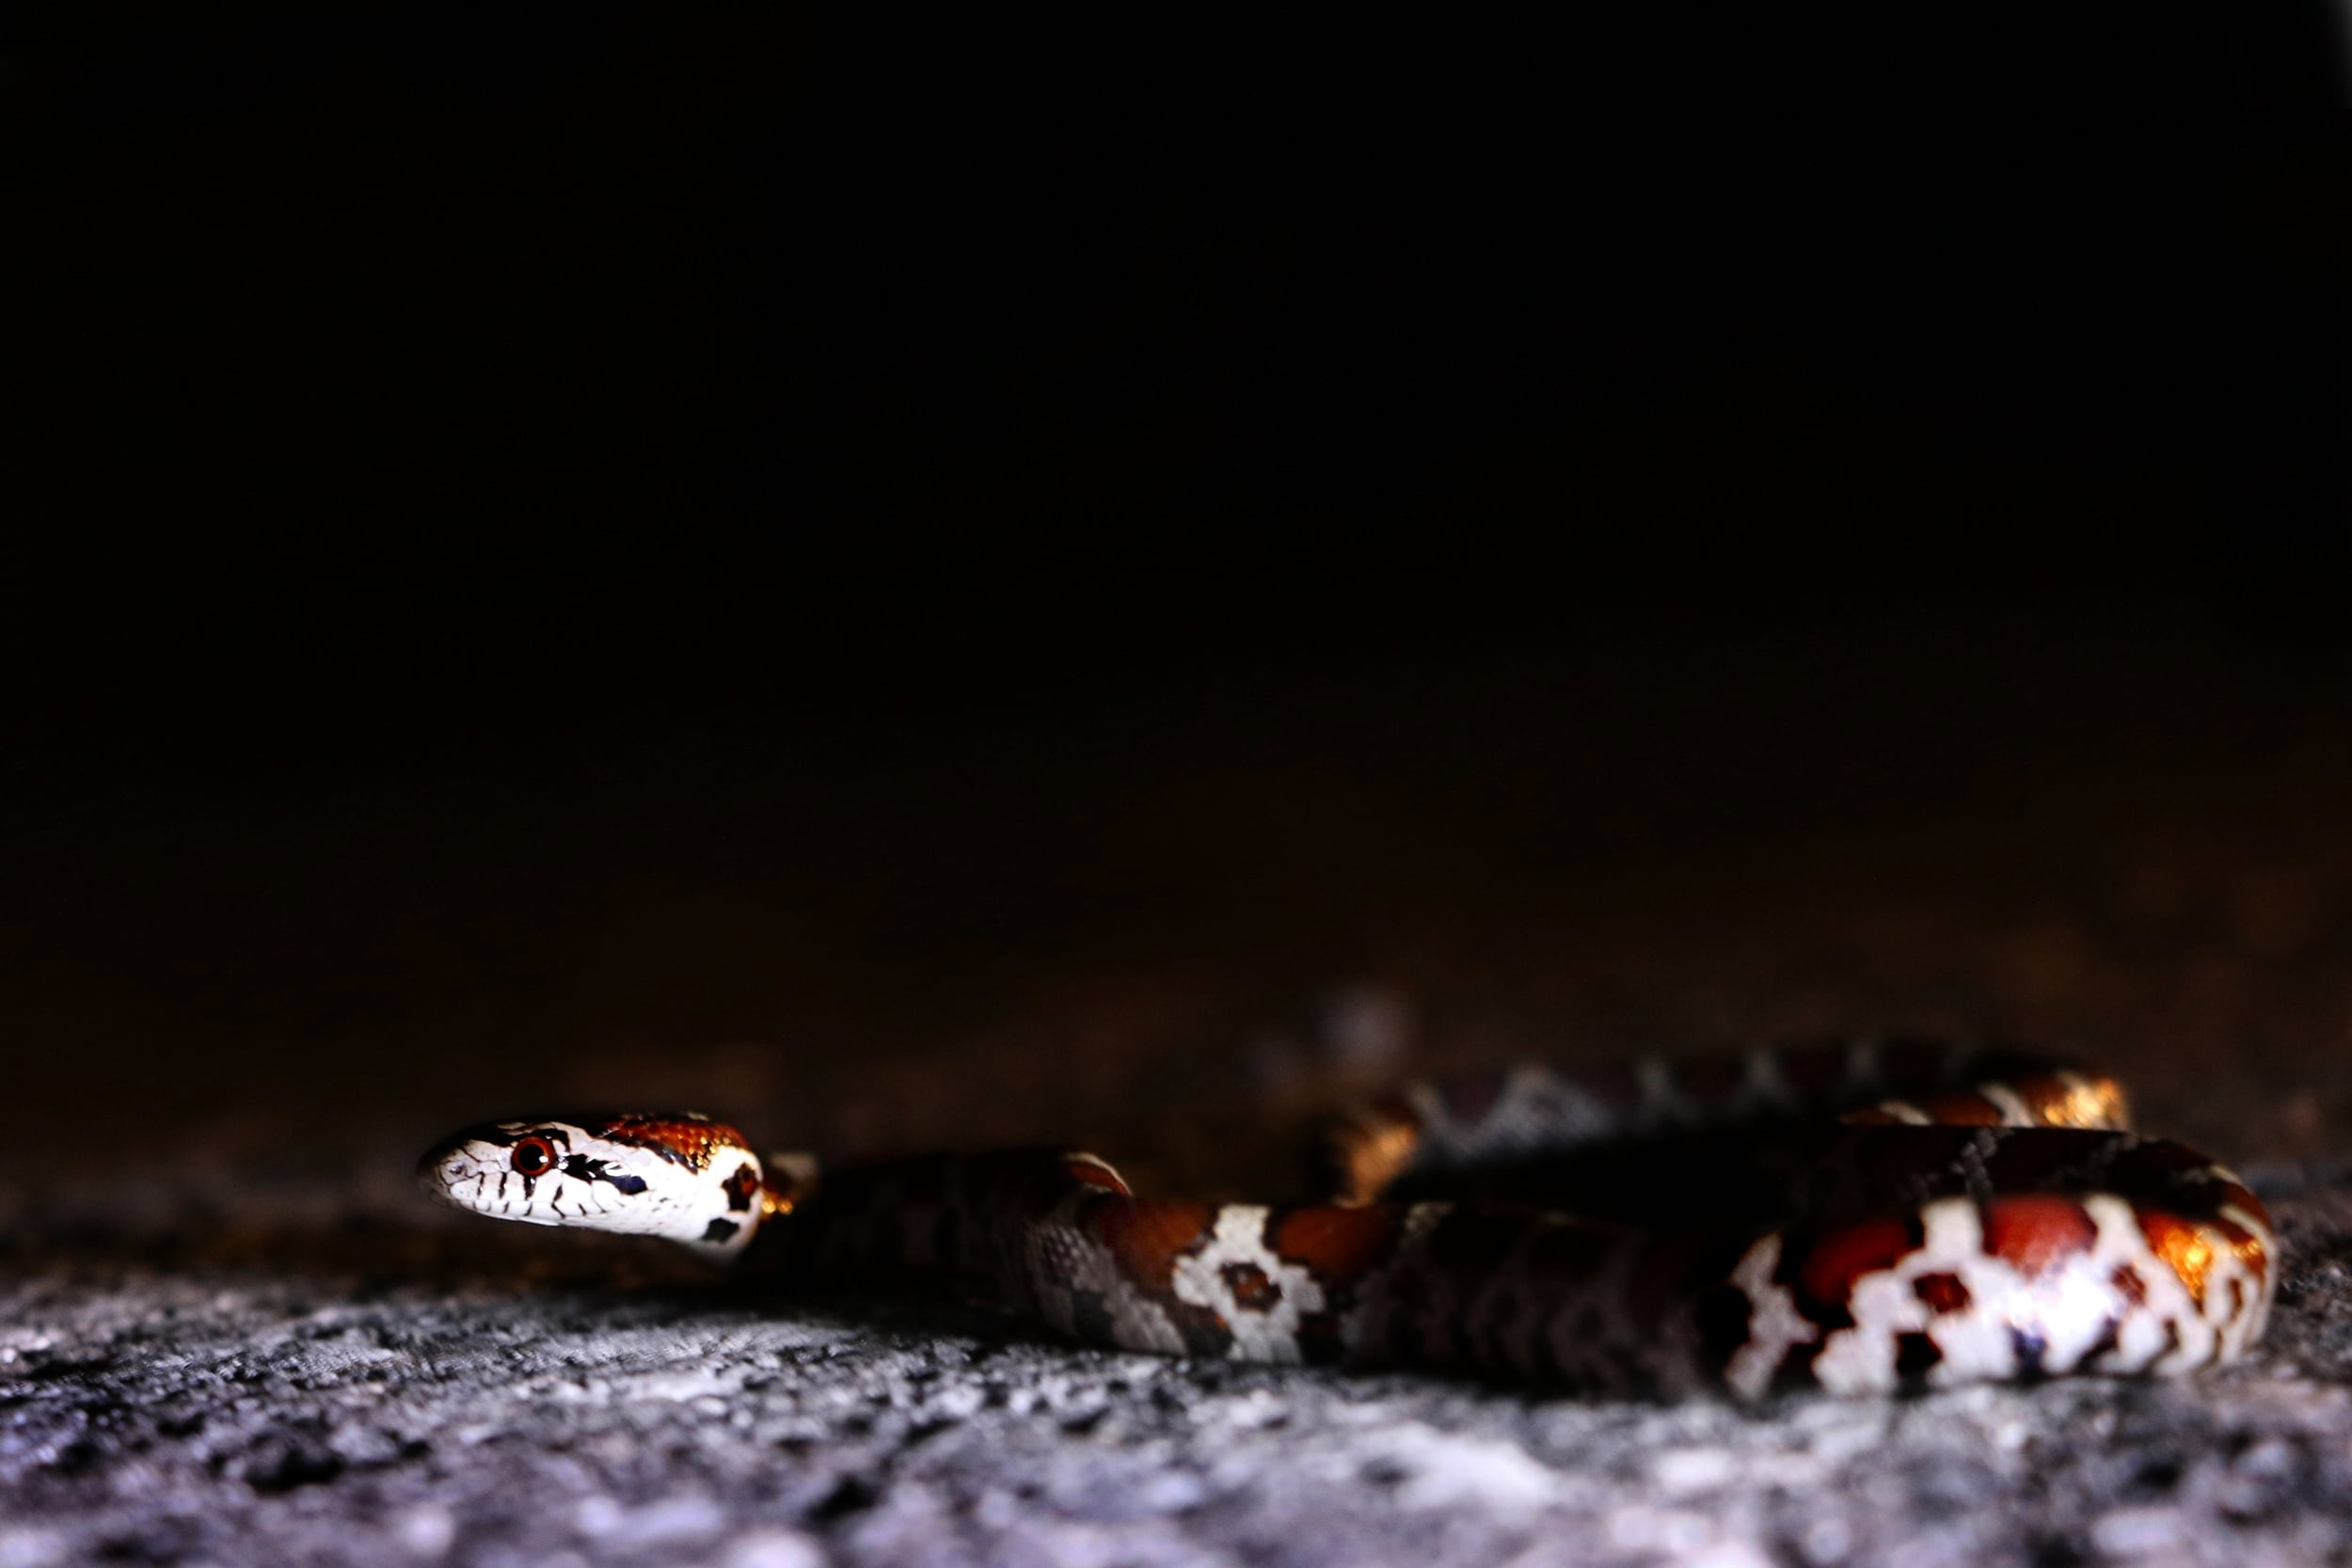 Eastern Milksnake - I cruised this guy in South Central PA on a warm July night.